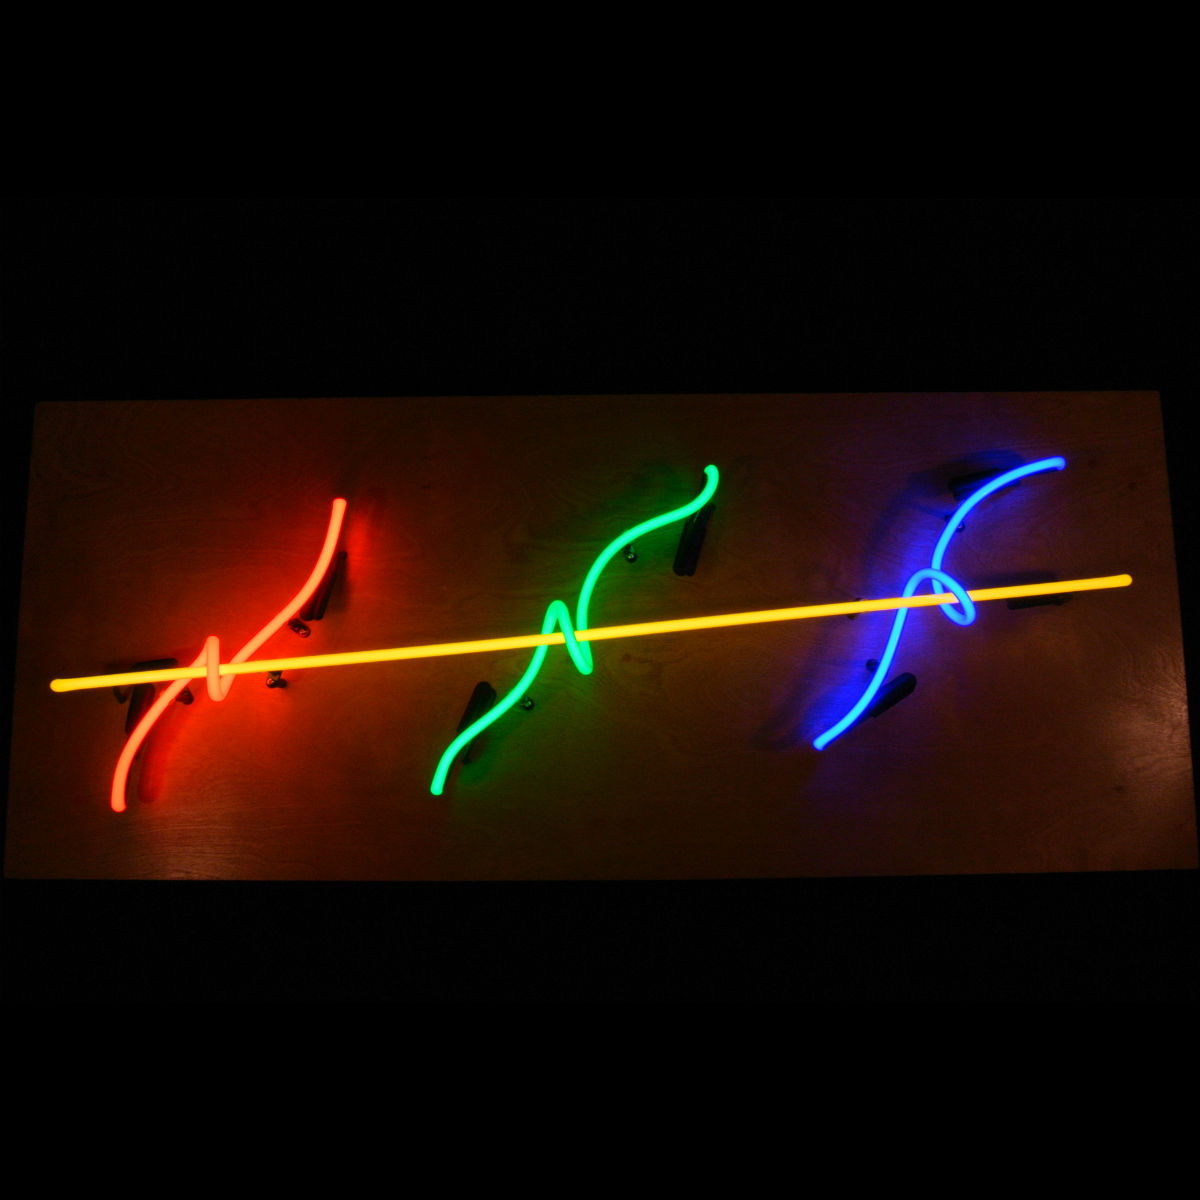 Ultra-modern Neon Light Sculpture in 4 colors of Stained Murano Italian Neon Glass by John Barton - Famous USA Neon Light Sculptor